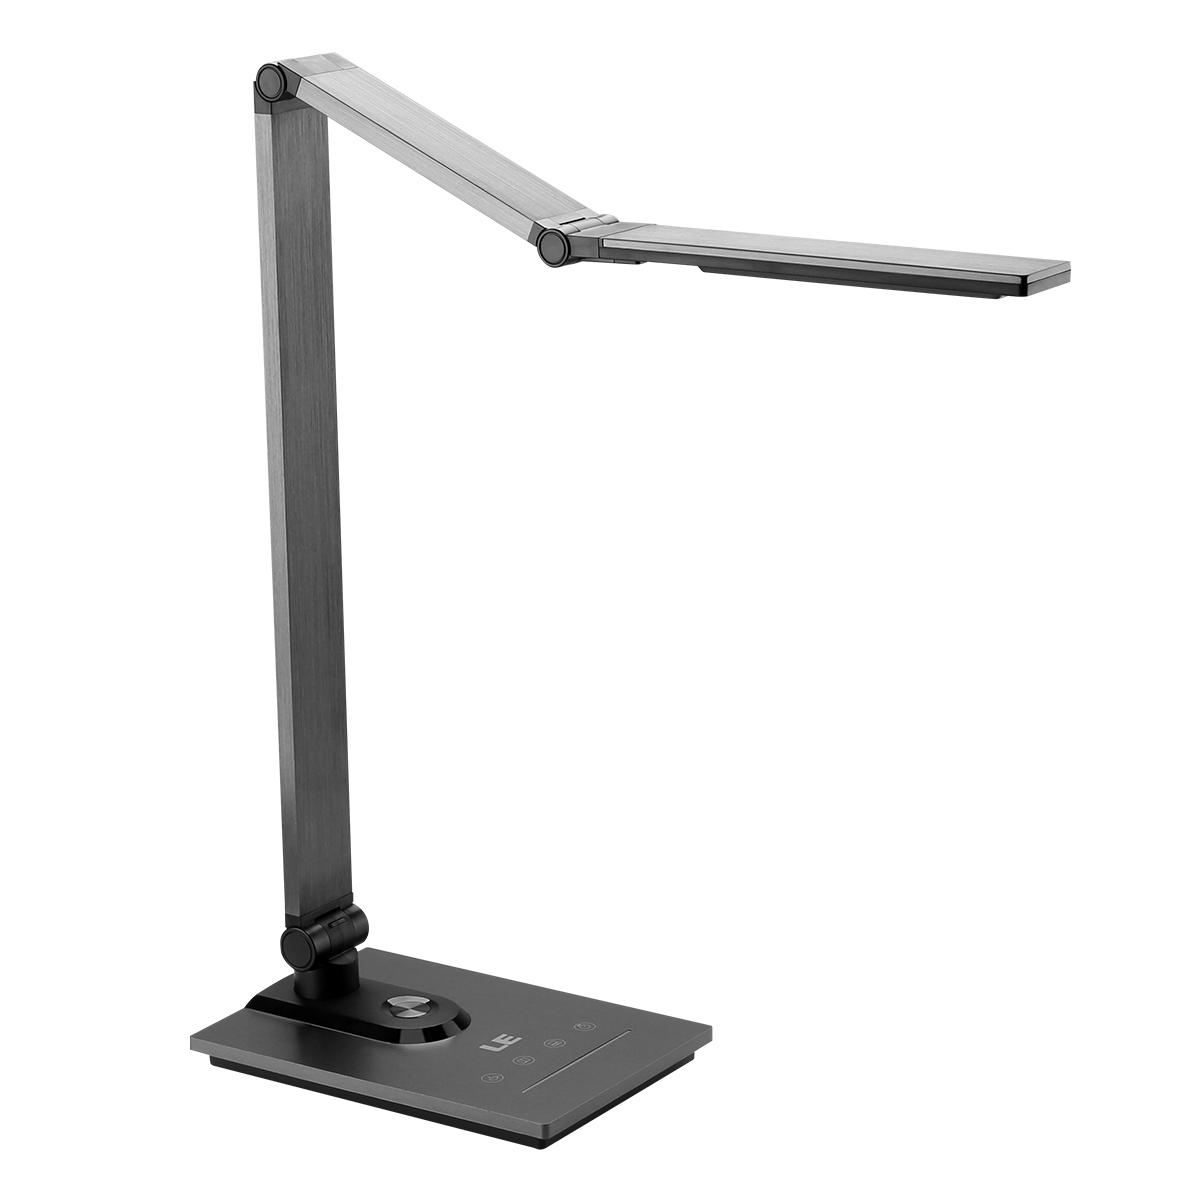 LED Desk Lamp Dimmable 3level Color Temperature Mode USB